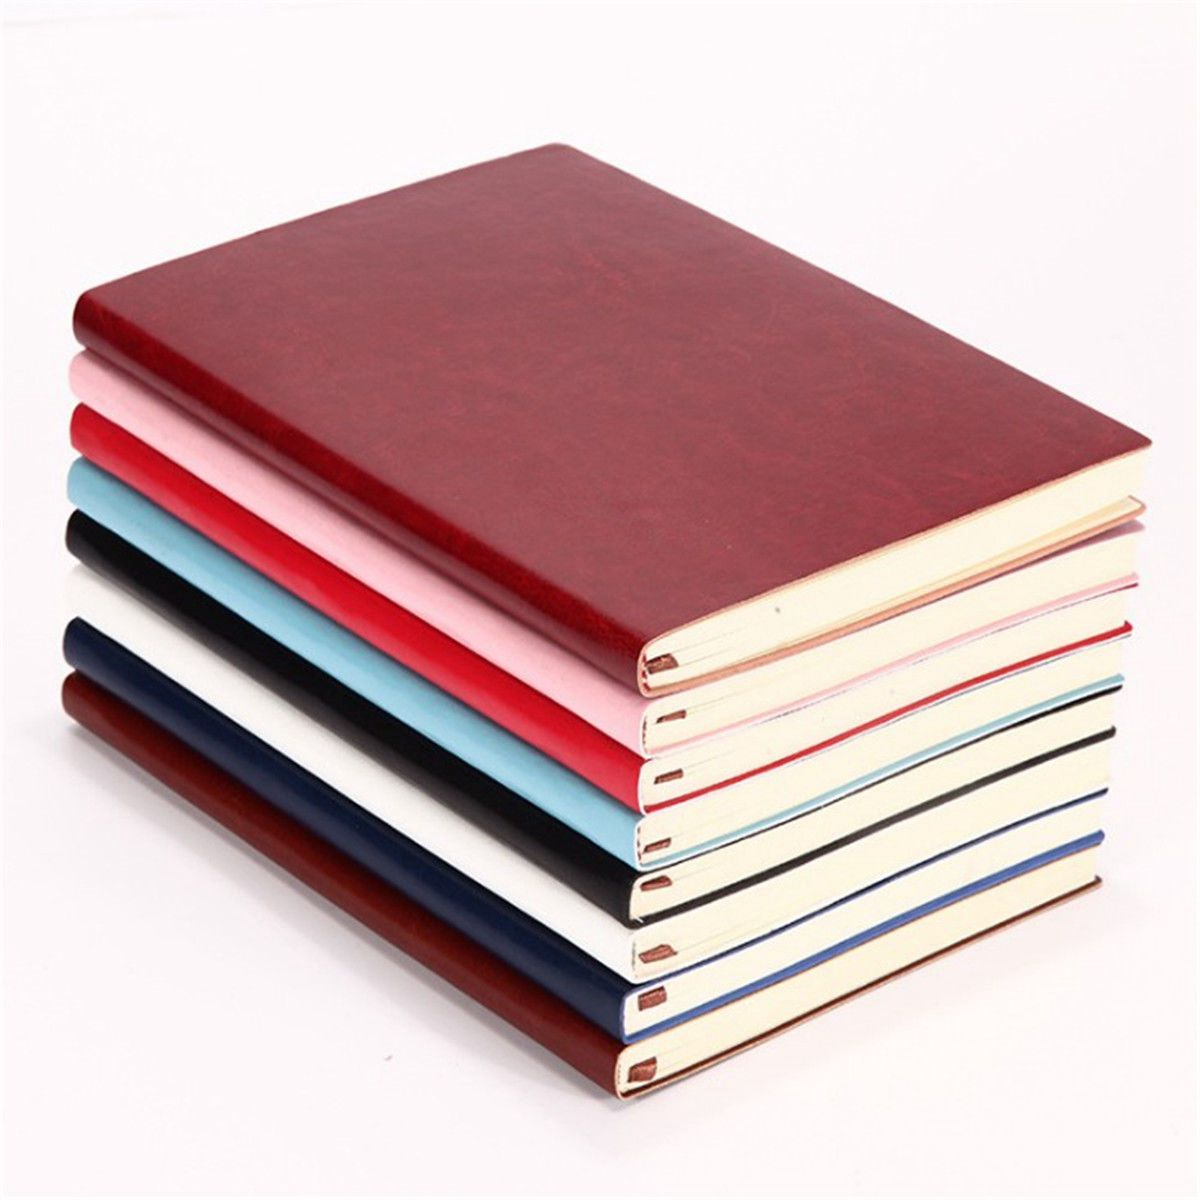 6 Color Random Soft Cover PU Leather Notebook Writing Journal 100 Page Lined Diary Book smart inverter charger 2500w modified sine wave inverter clm2500a dc 12v 24v 48v to ac 110v 220v 2500w surge power 5000w